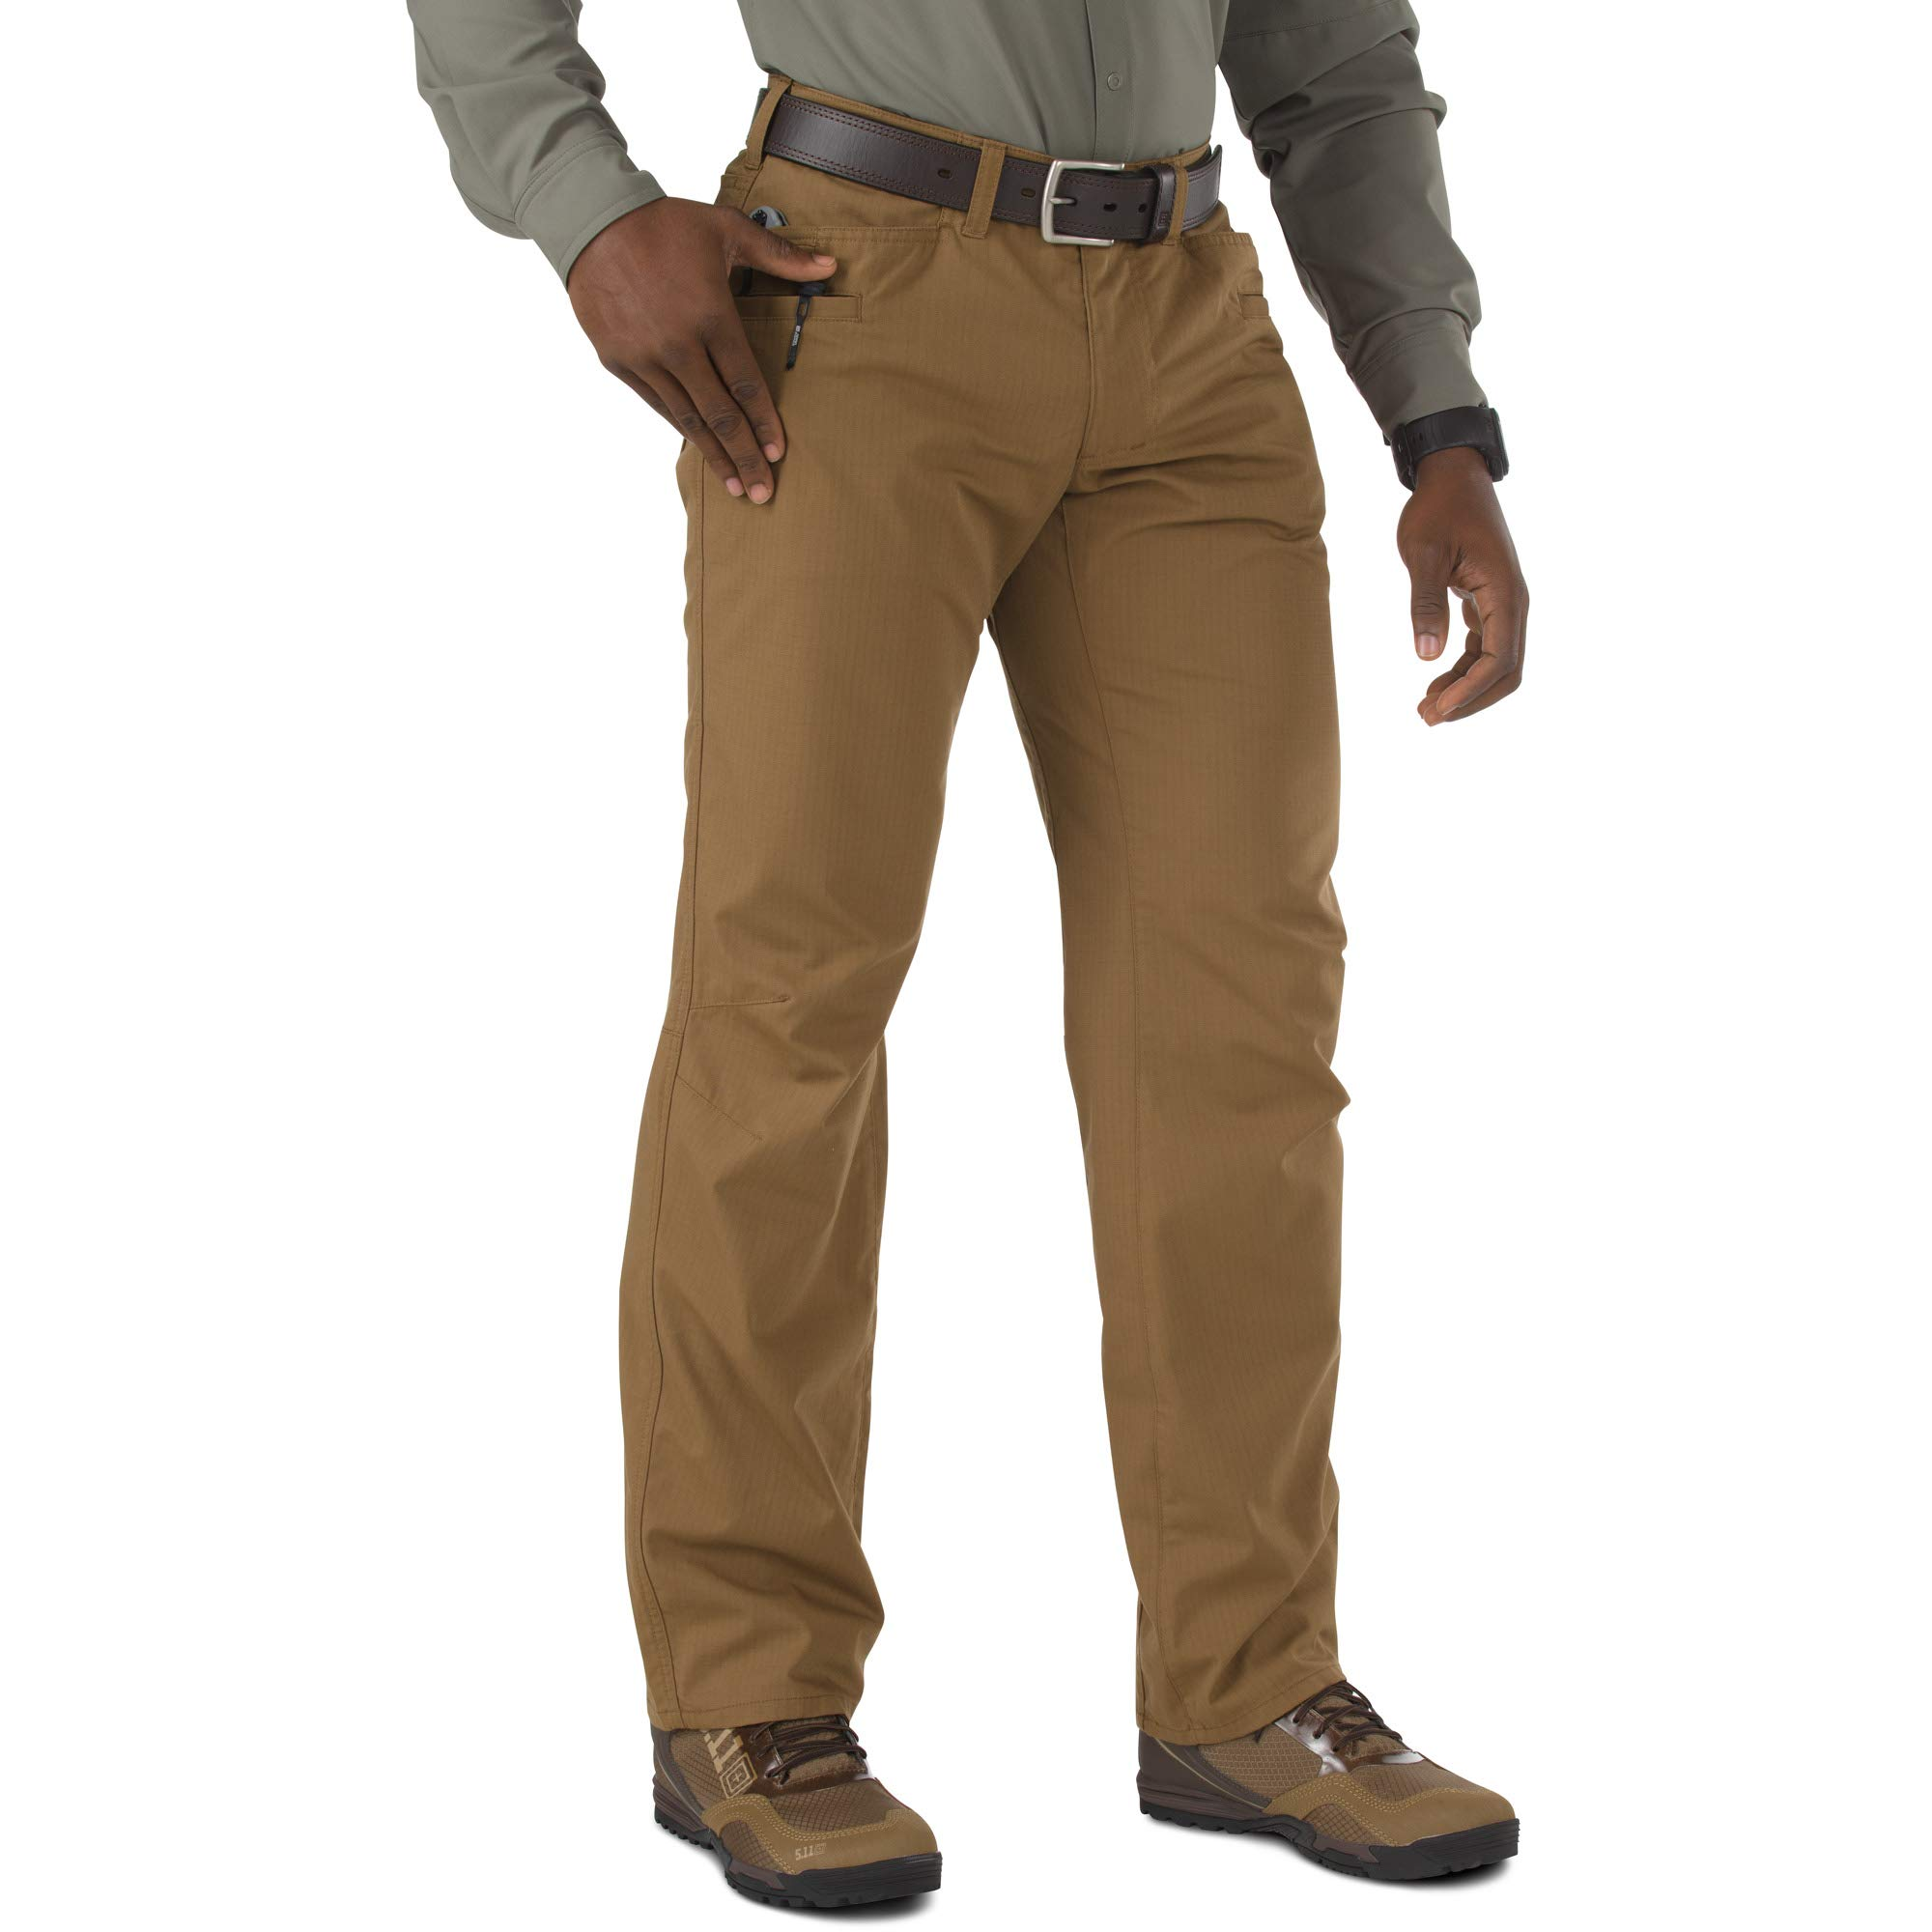 5.11 Tactical Ridgeline Pant,Battle Brown,34Wx36L